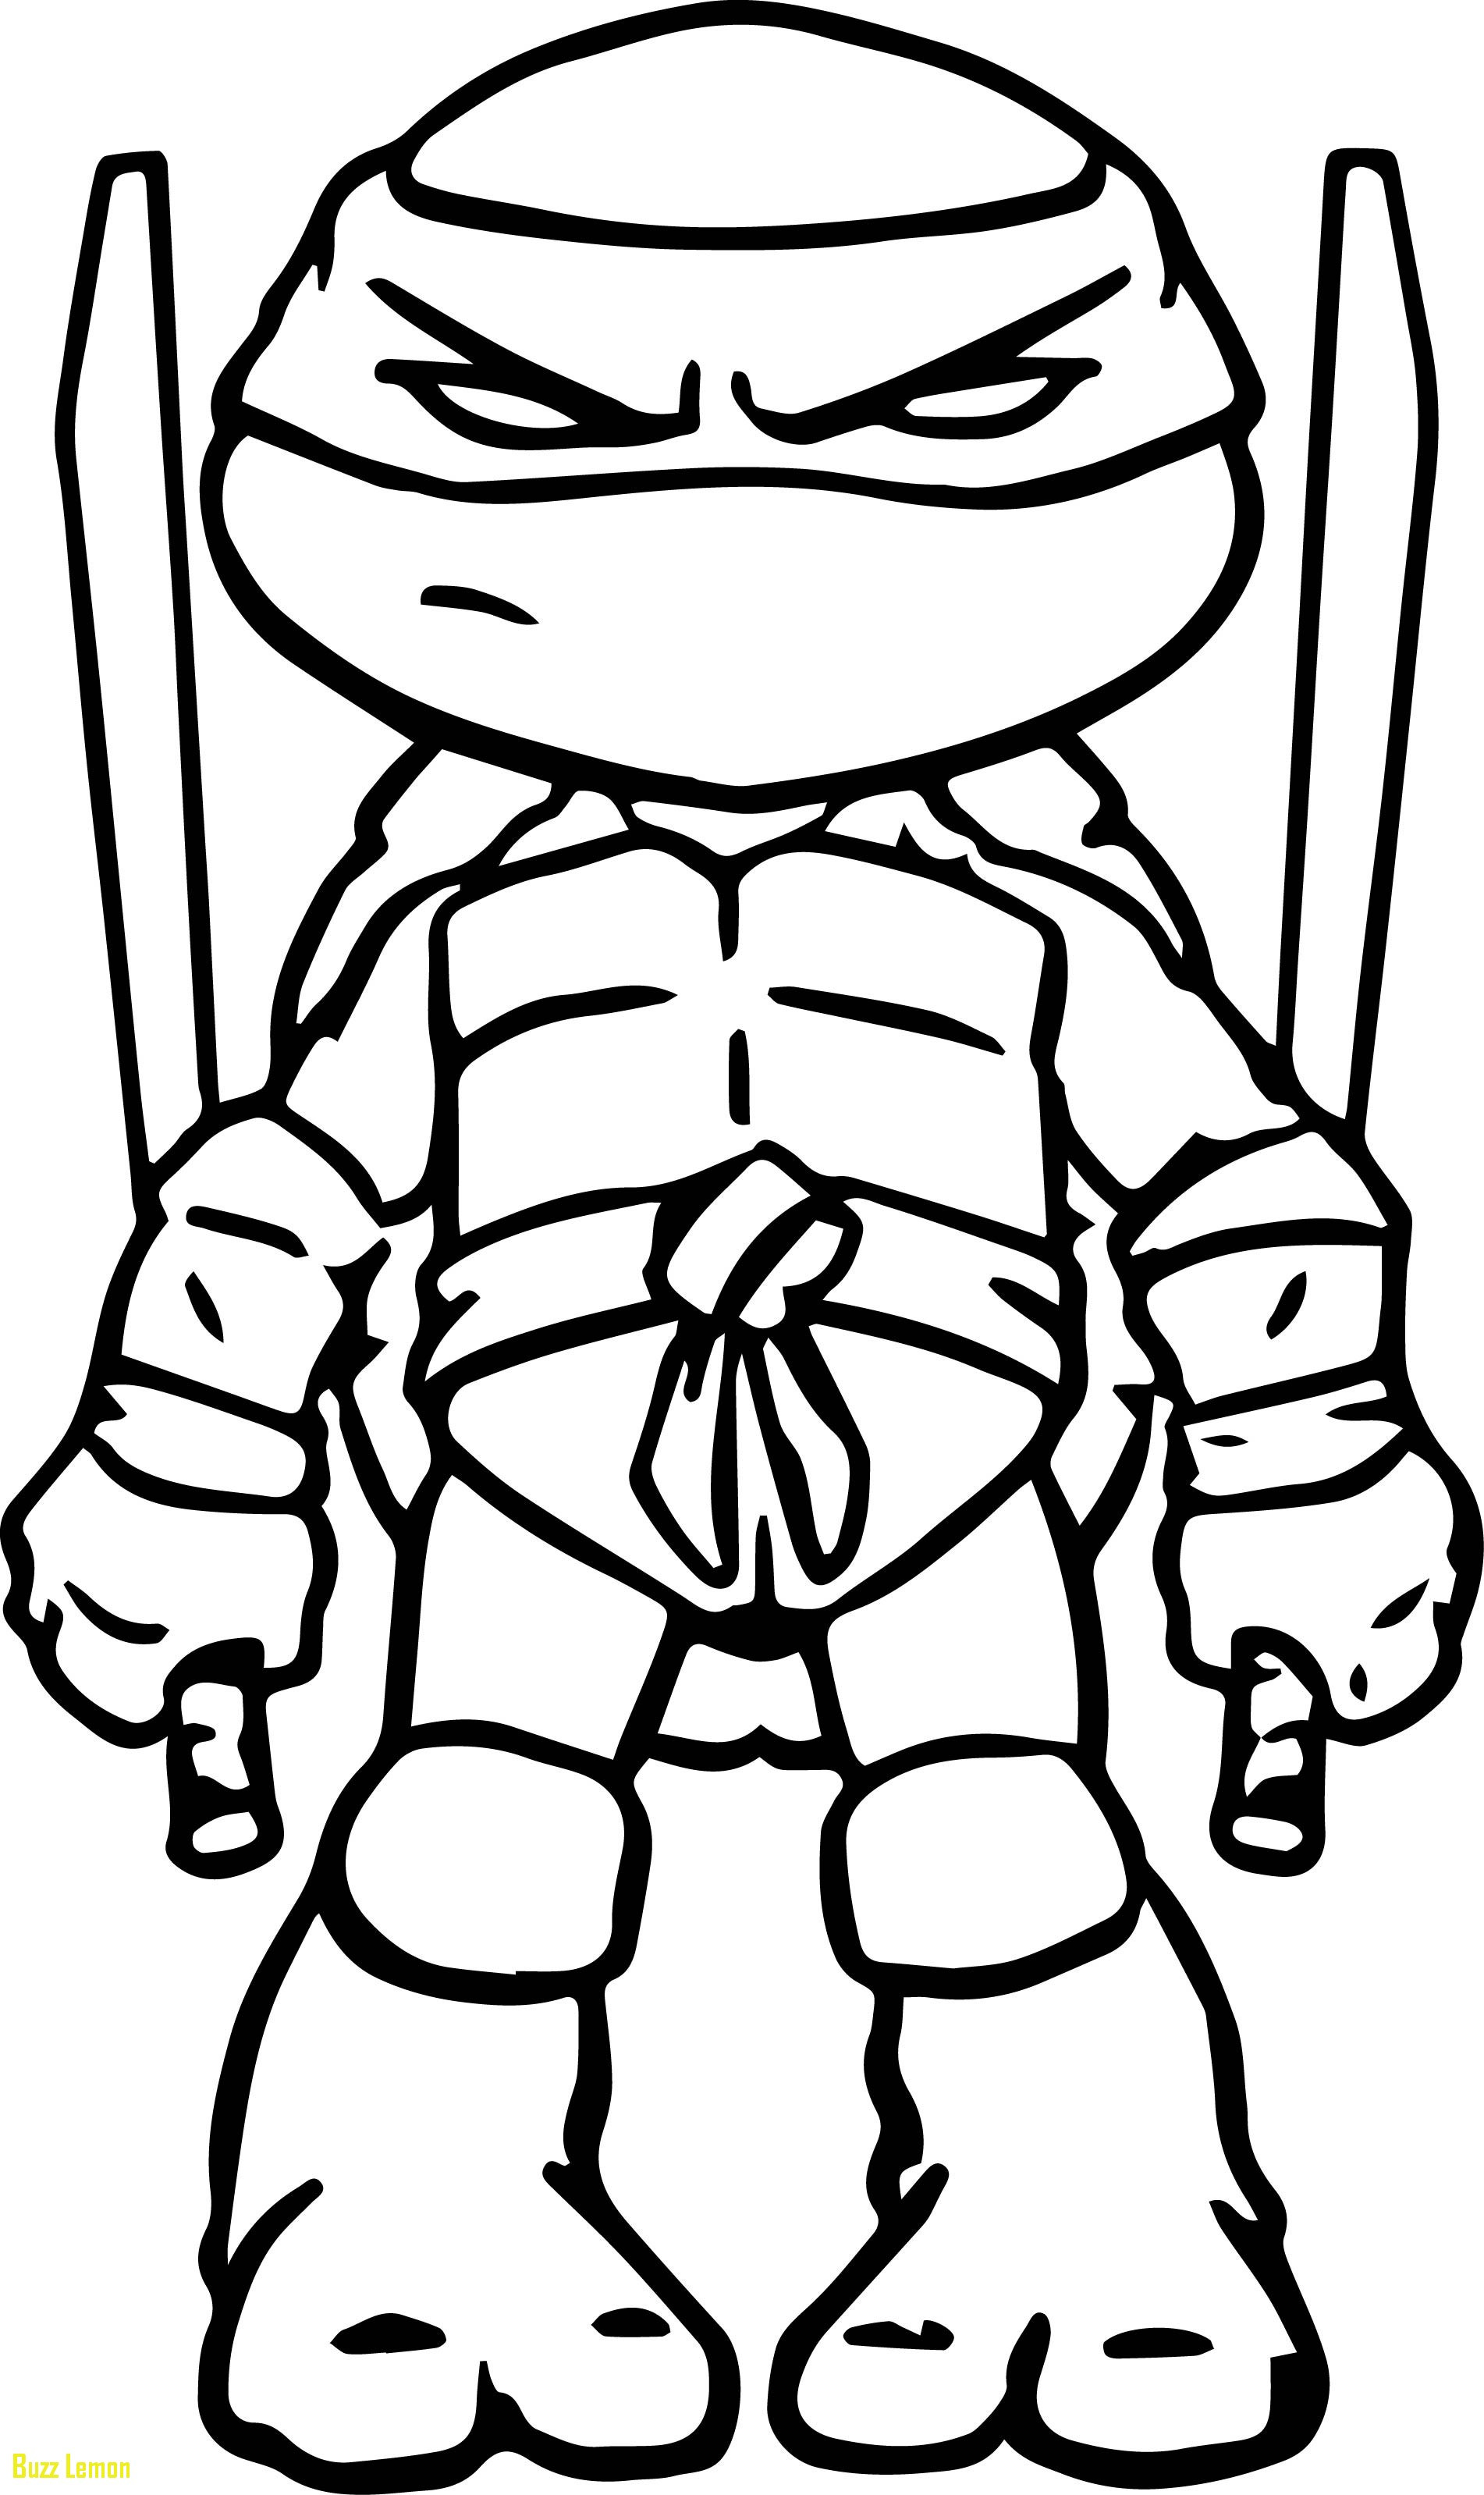 ninja turtles face coloring pages pin op kleinkids face turtles pages coloring ninja